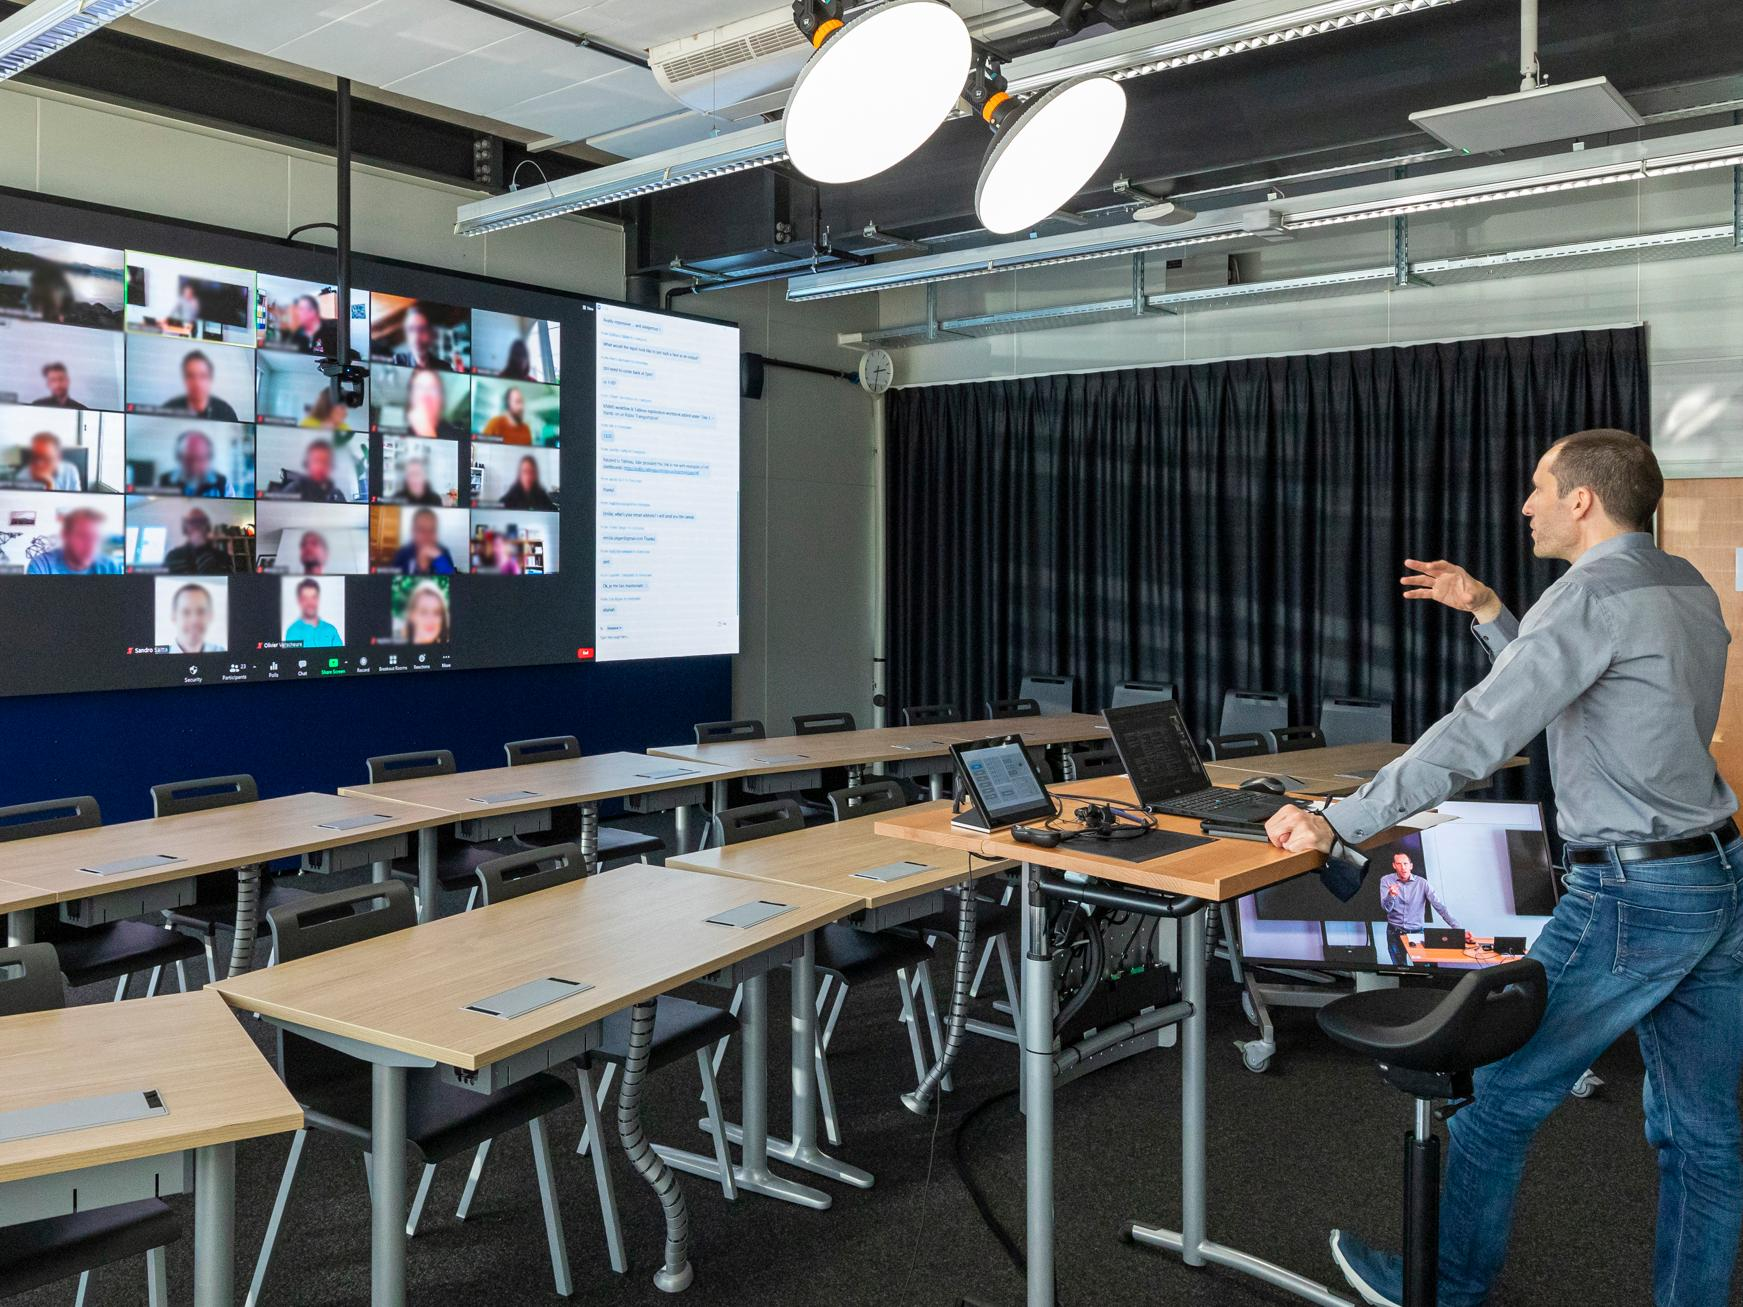 HEC Lausanne is reinventing its online executive education programs with an innovative, immersive solution